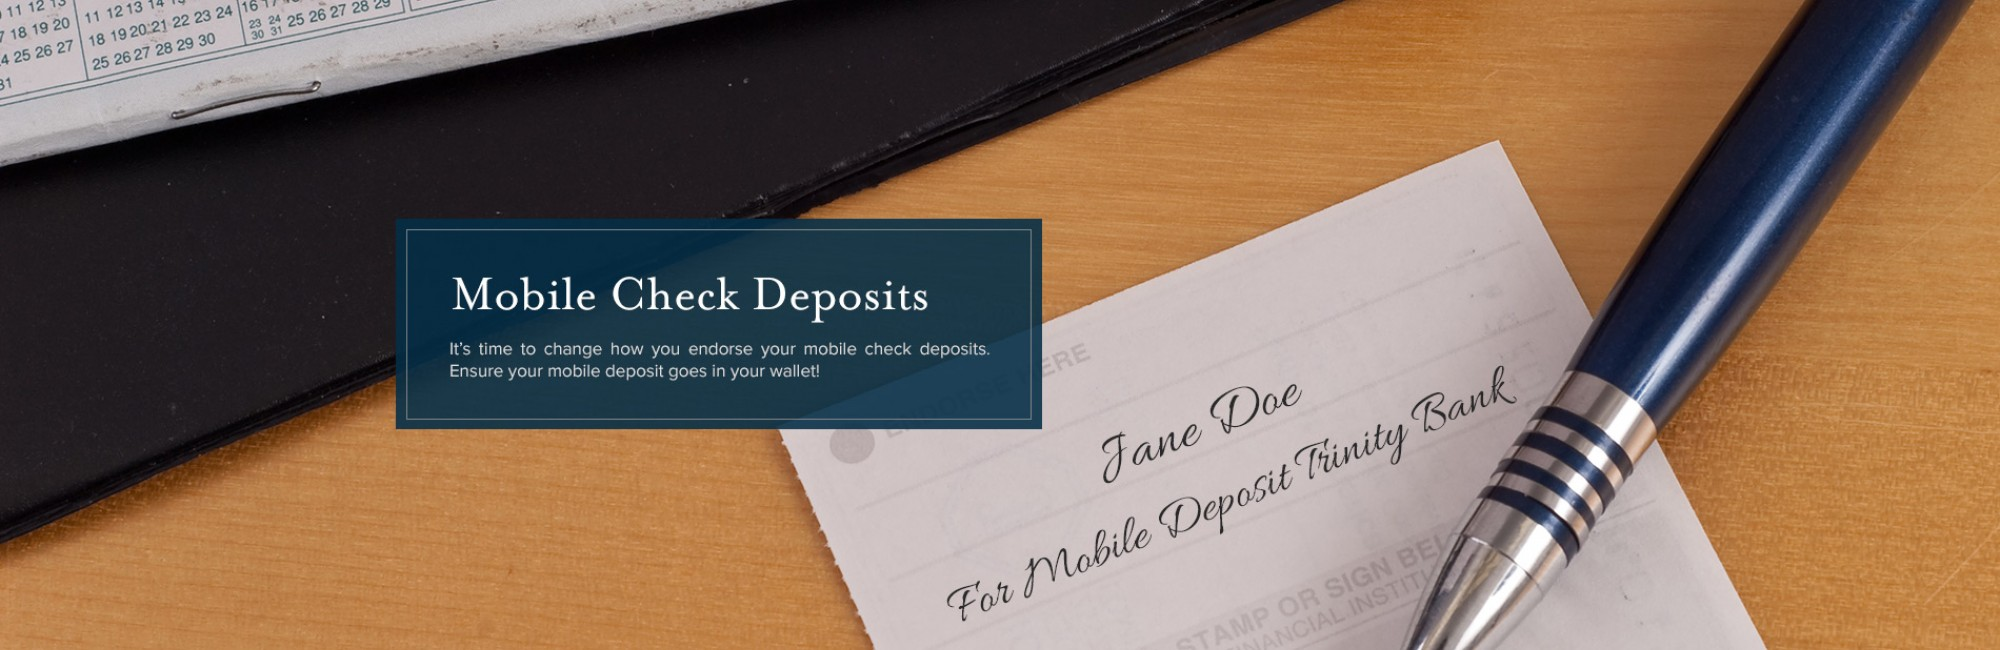 Mobile Deposit Endorsement Change